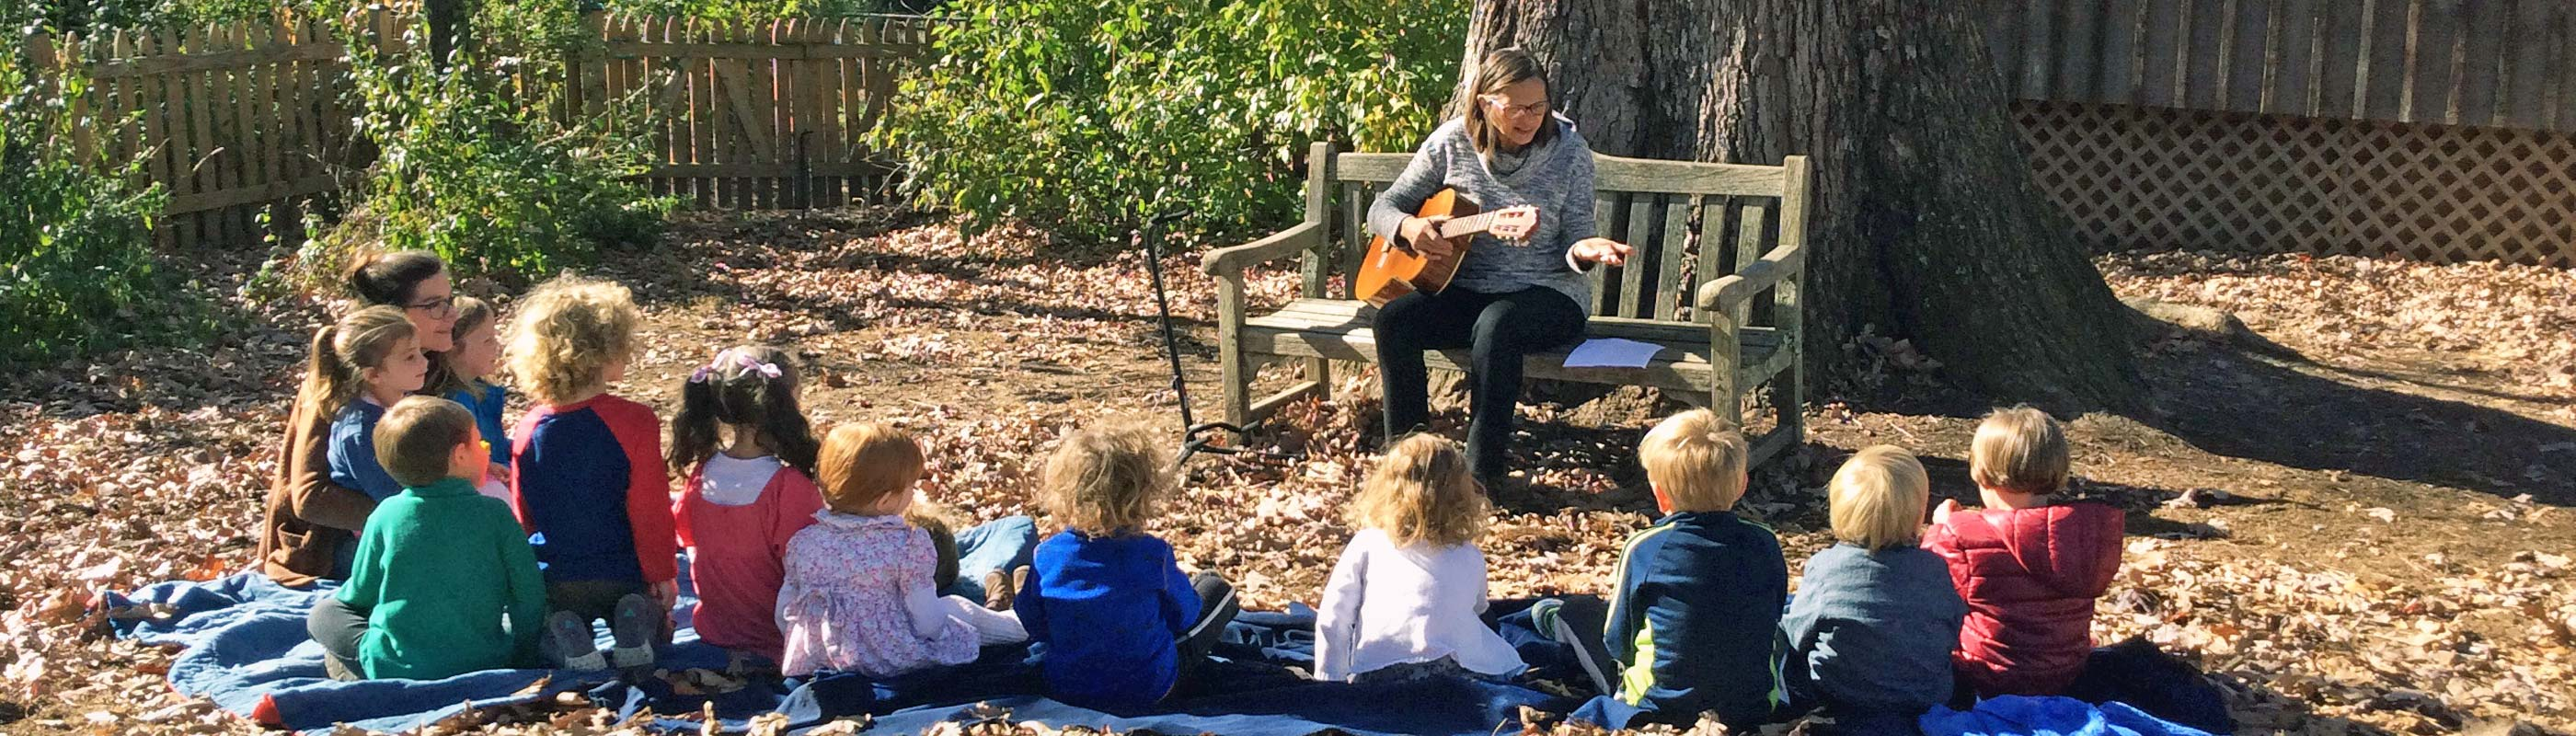 Marjo_with_kids_outside_guitar.jpg